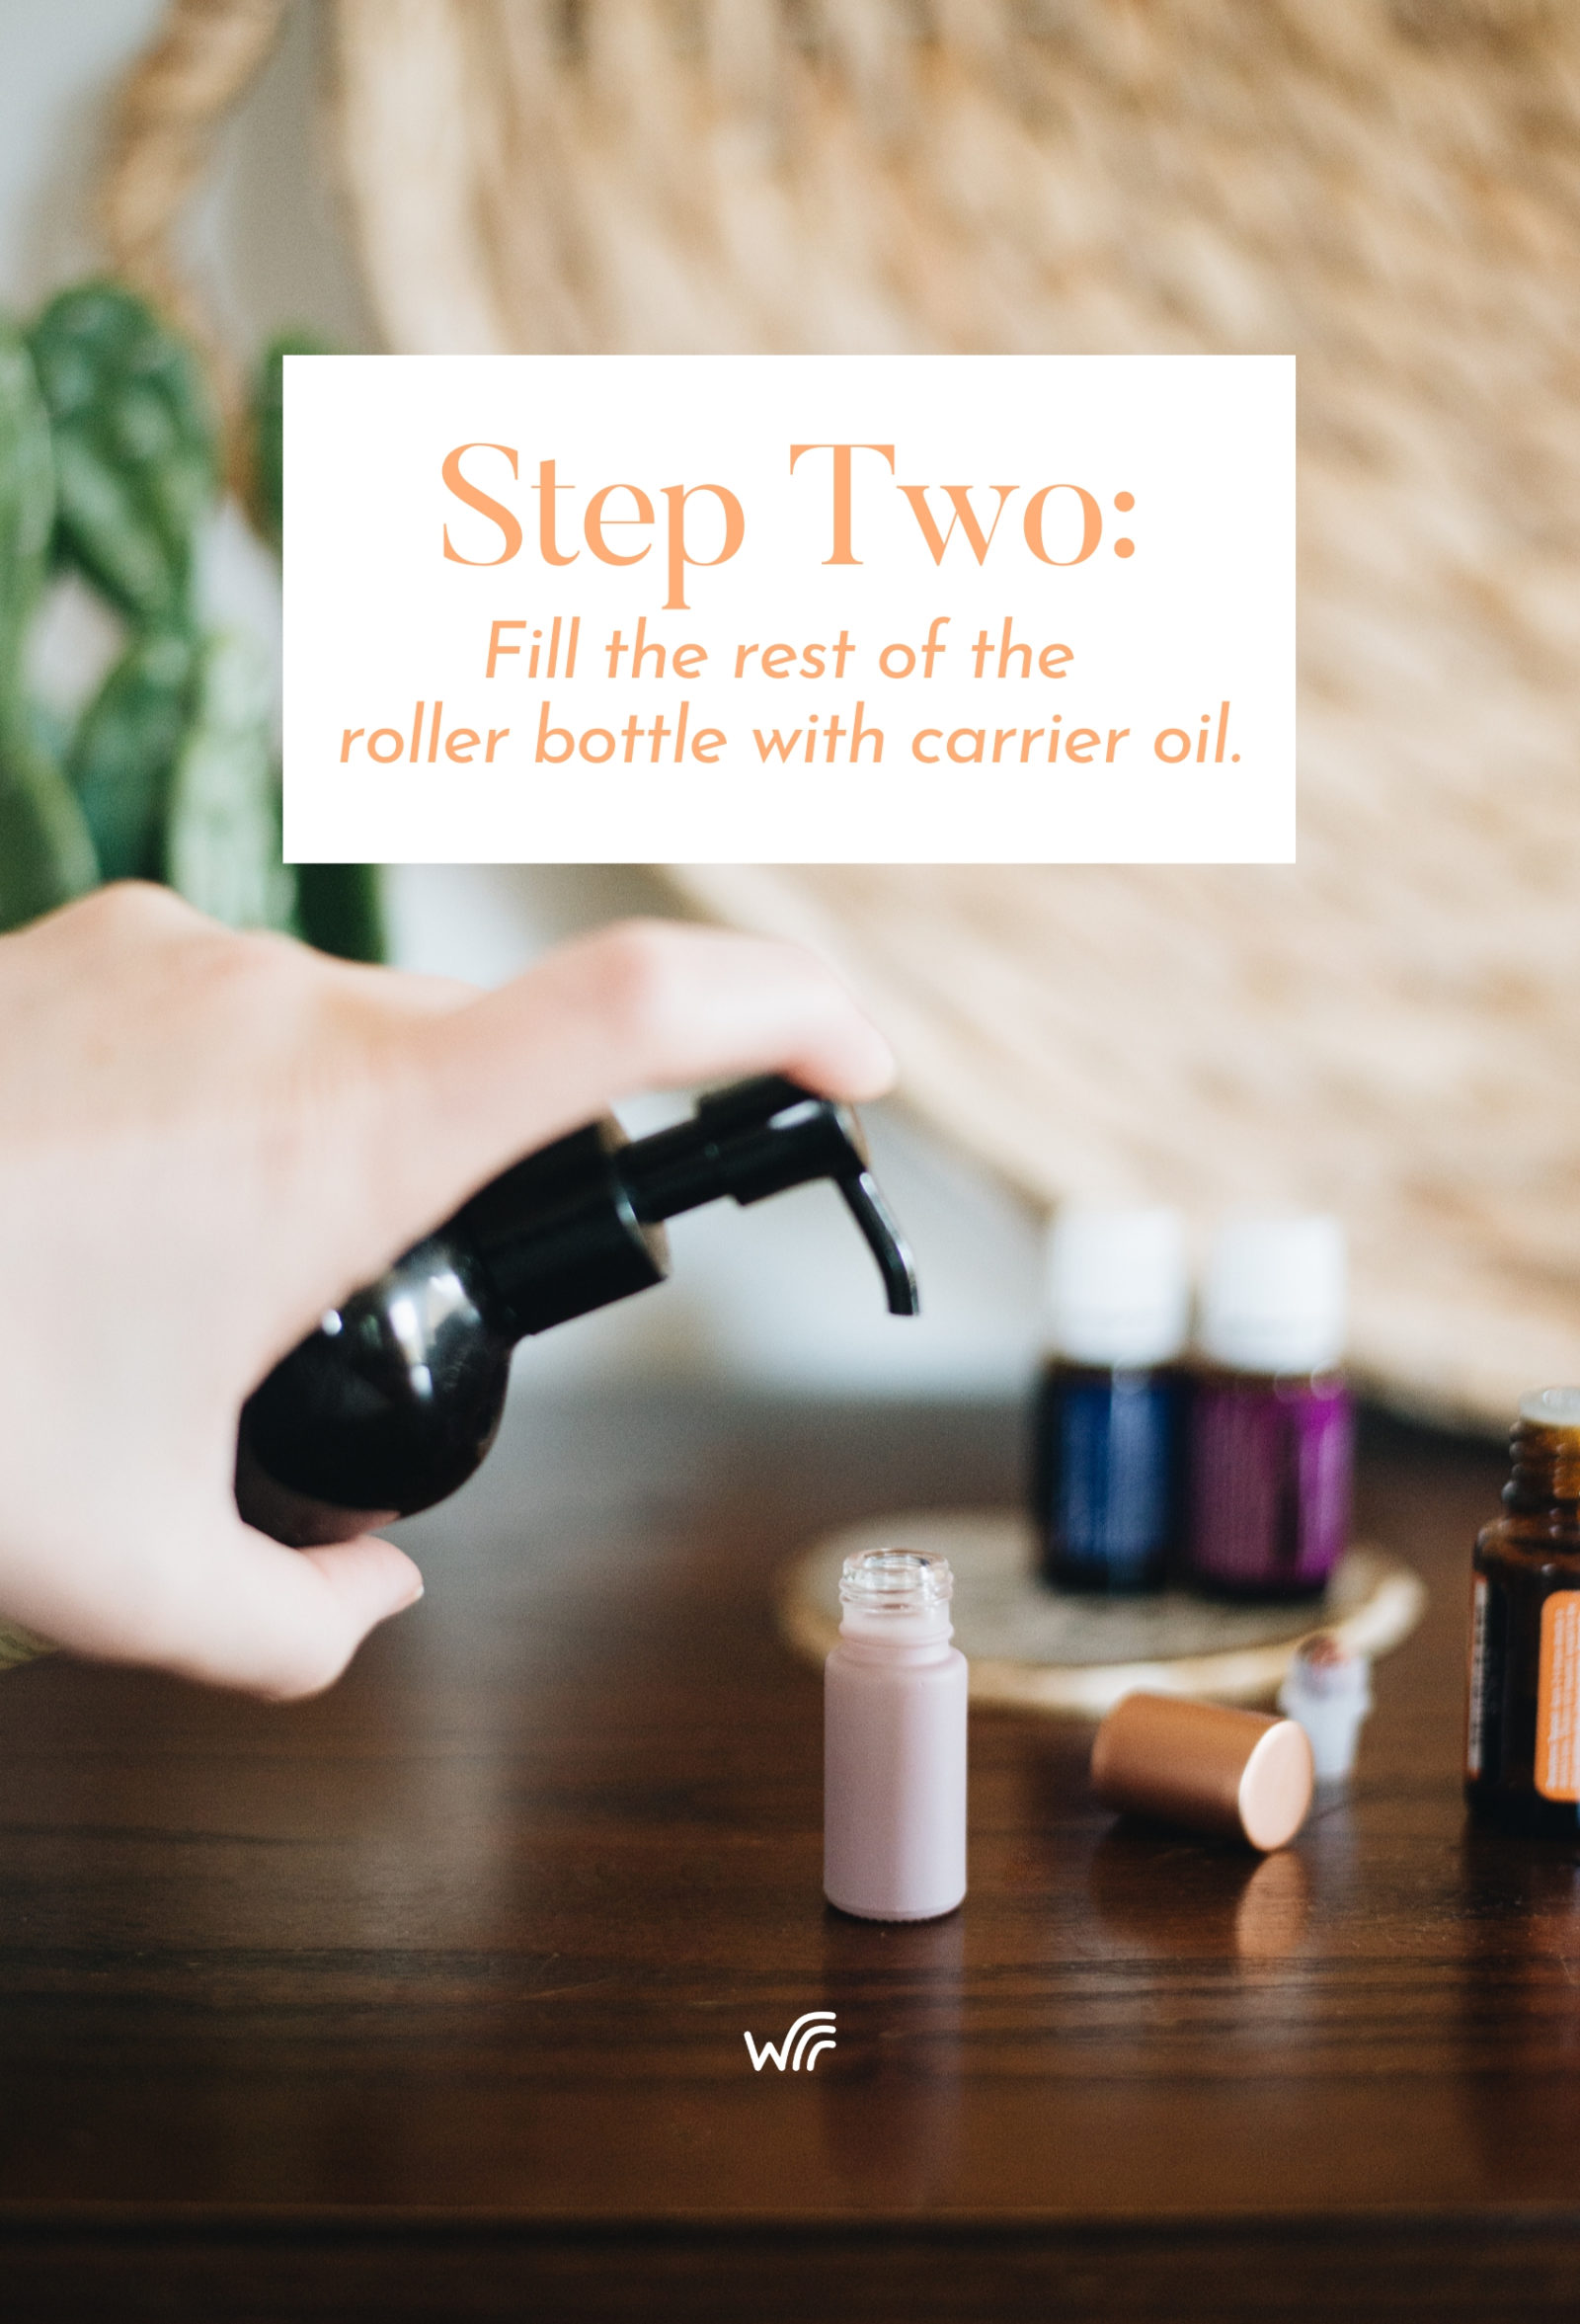 Step Two, fill the rest of the roller bottle with carrier oil Whimsy + Wellness